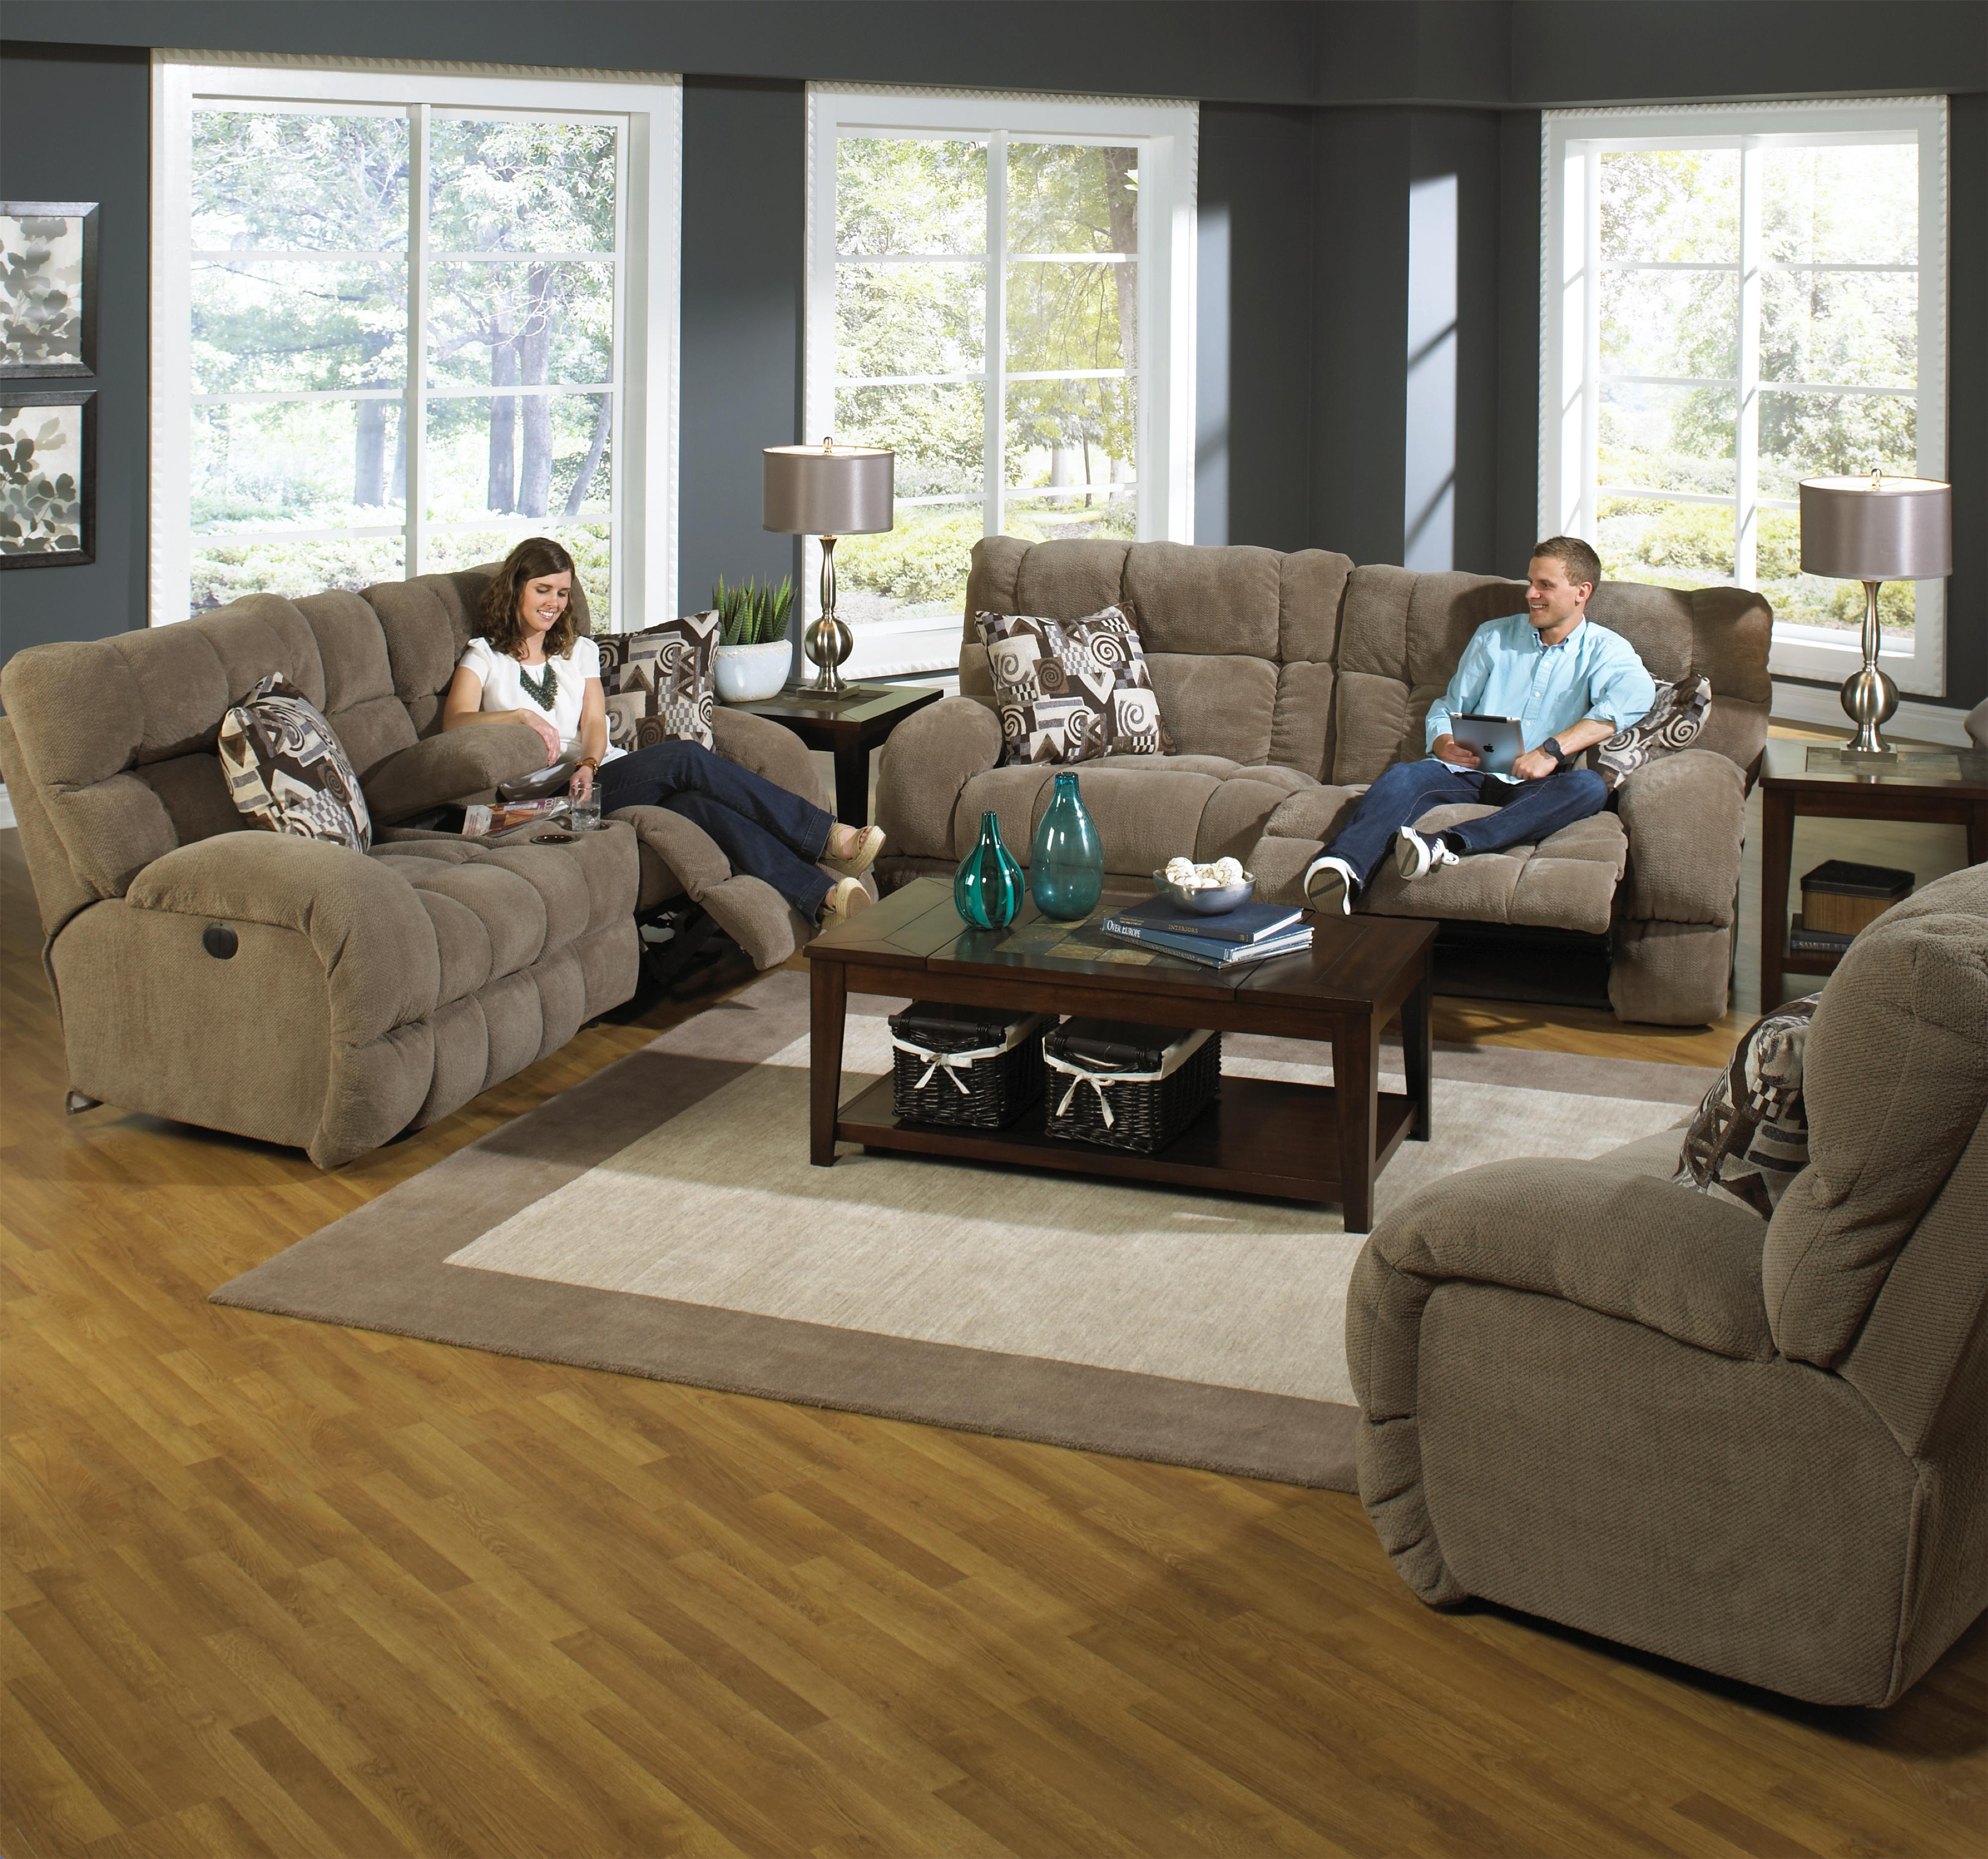 fame recliner recliners headrest hugger power number chairs chair southern products lay wall item motion flat